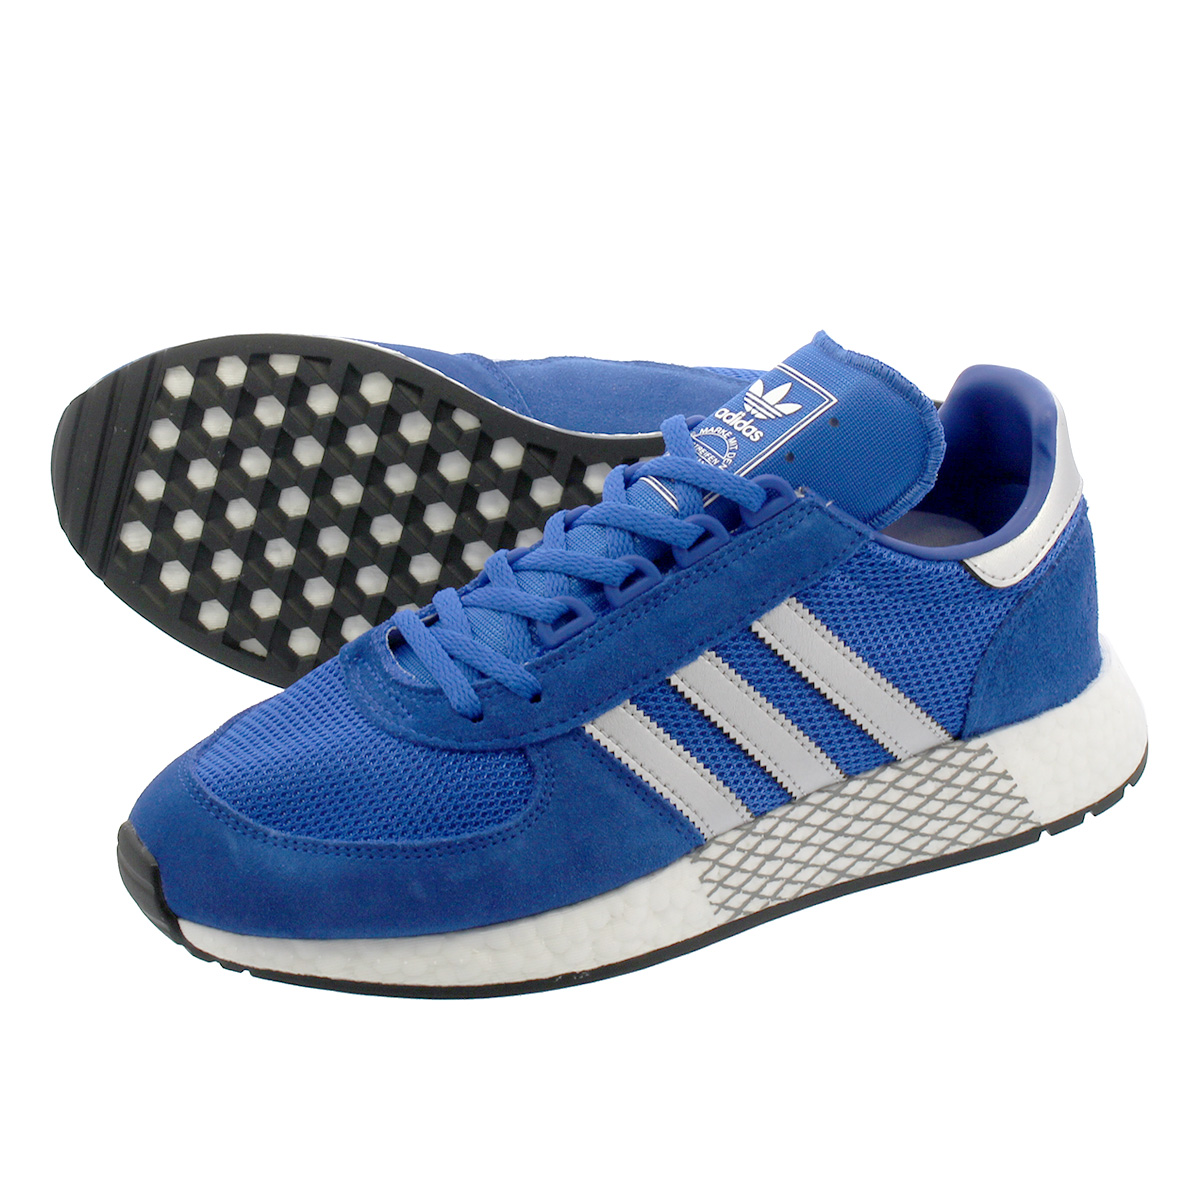 adidas MARATHON x 5923 【Never Made】 【国内店舗限定モデル】 アディダス マラソン x 5923 BLUE/SILVER MET/COLLEGE ROYAL g26782